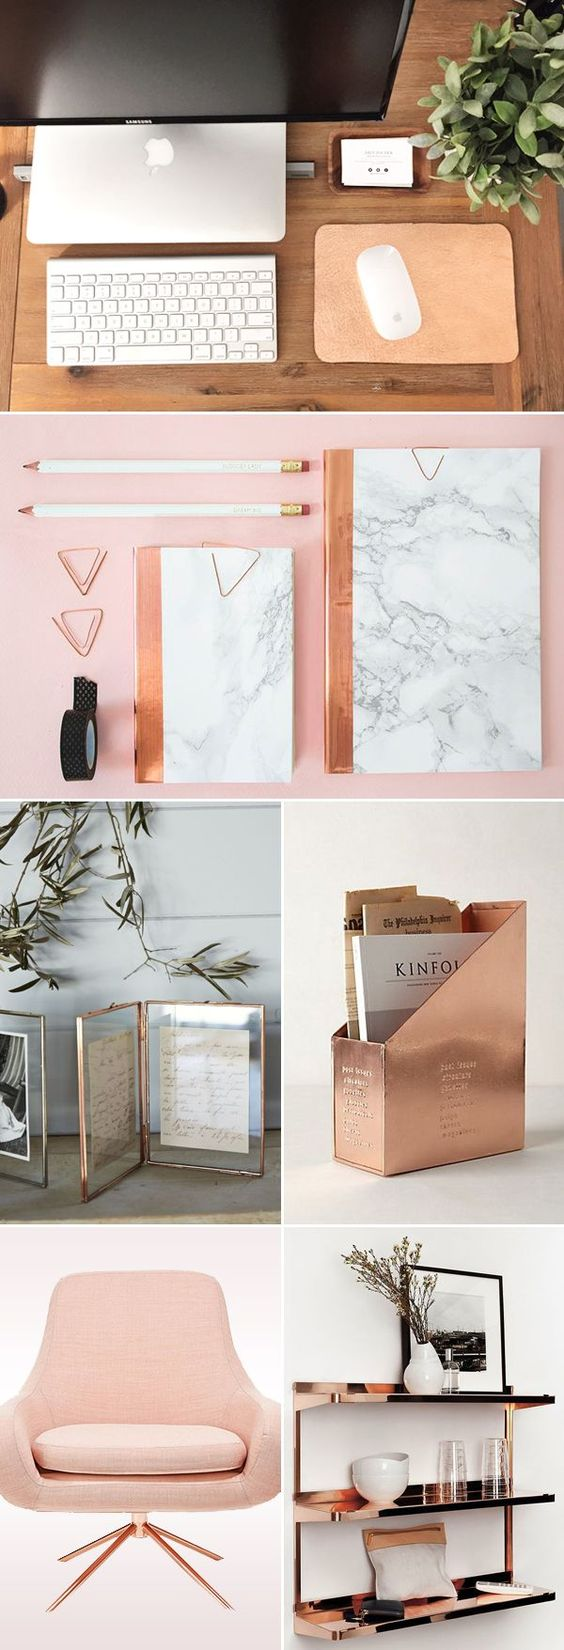 Rose gold has been around in the jewelry industry for many years, and now even more popular as girls all over the world are in love with the new rose gold mobile device! The pretty metallic pink trend is blowing up everywhere, and if you are a fan of it, why not let it inspire …: